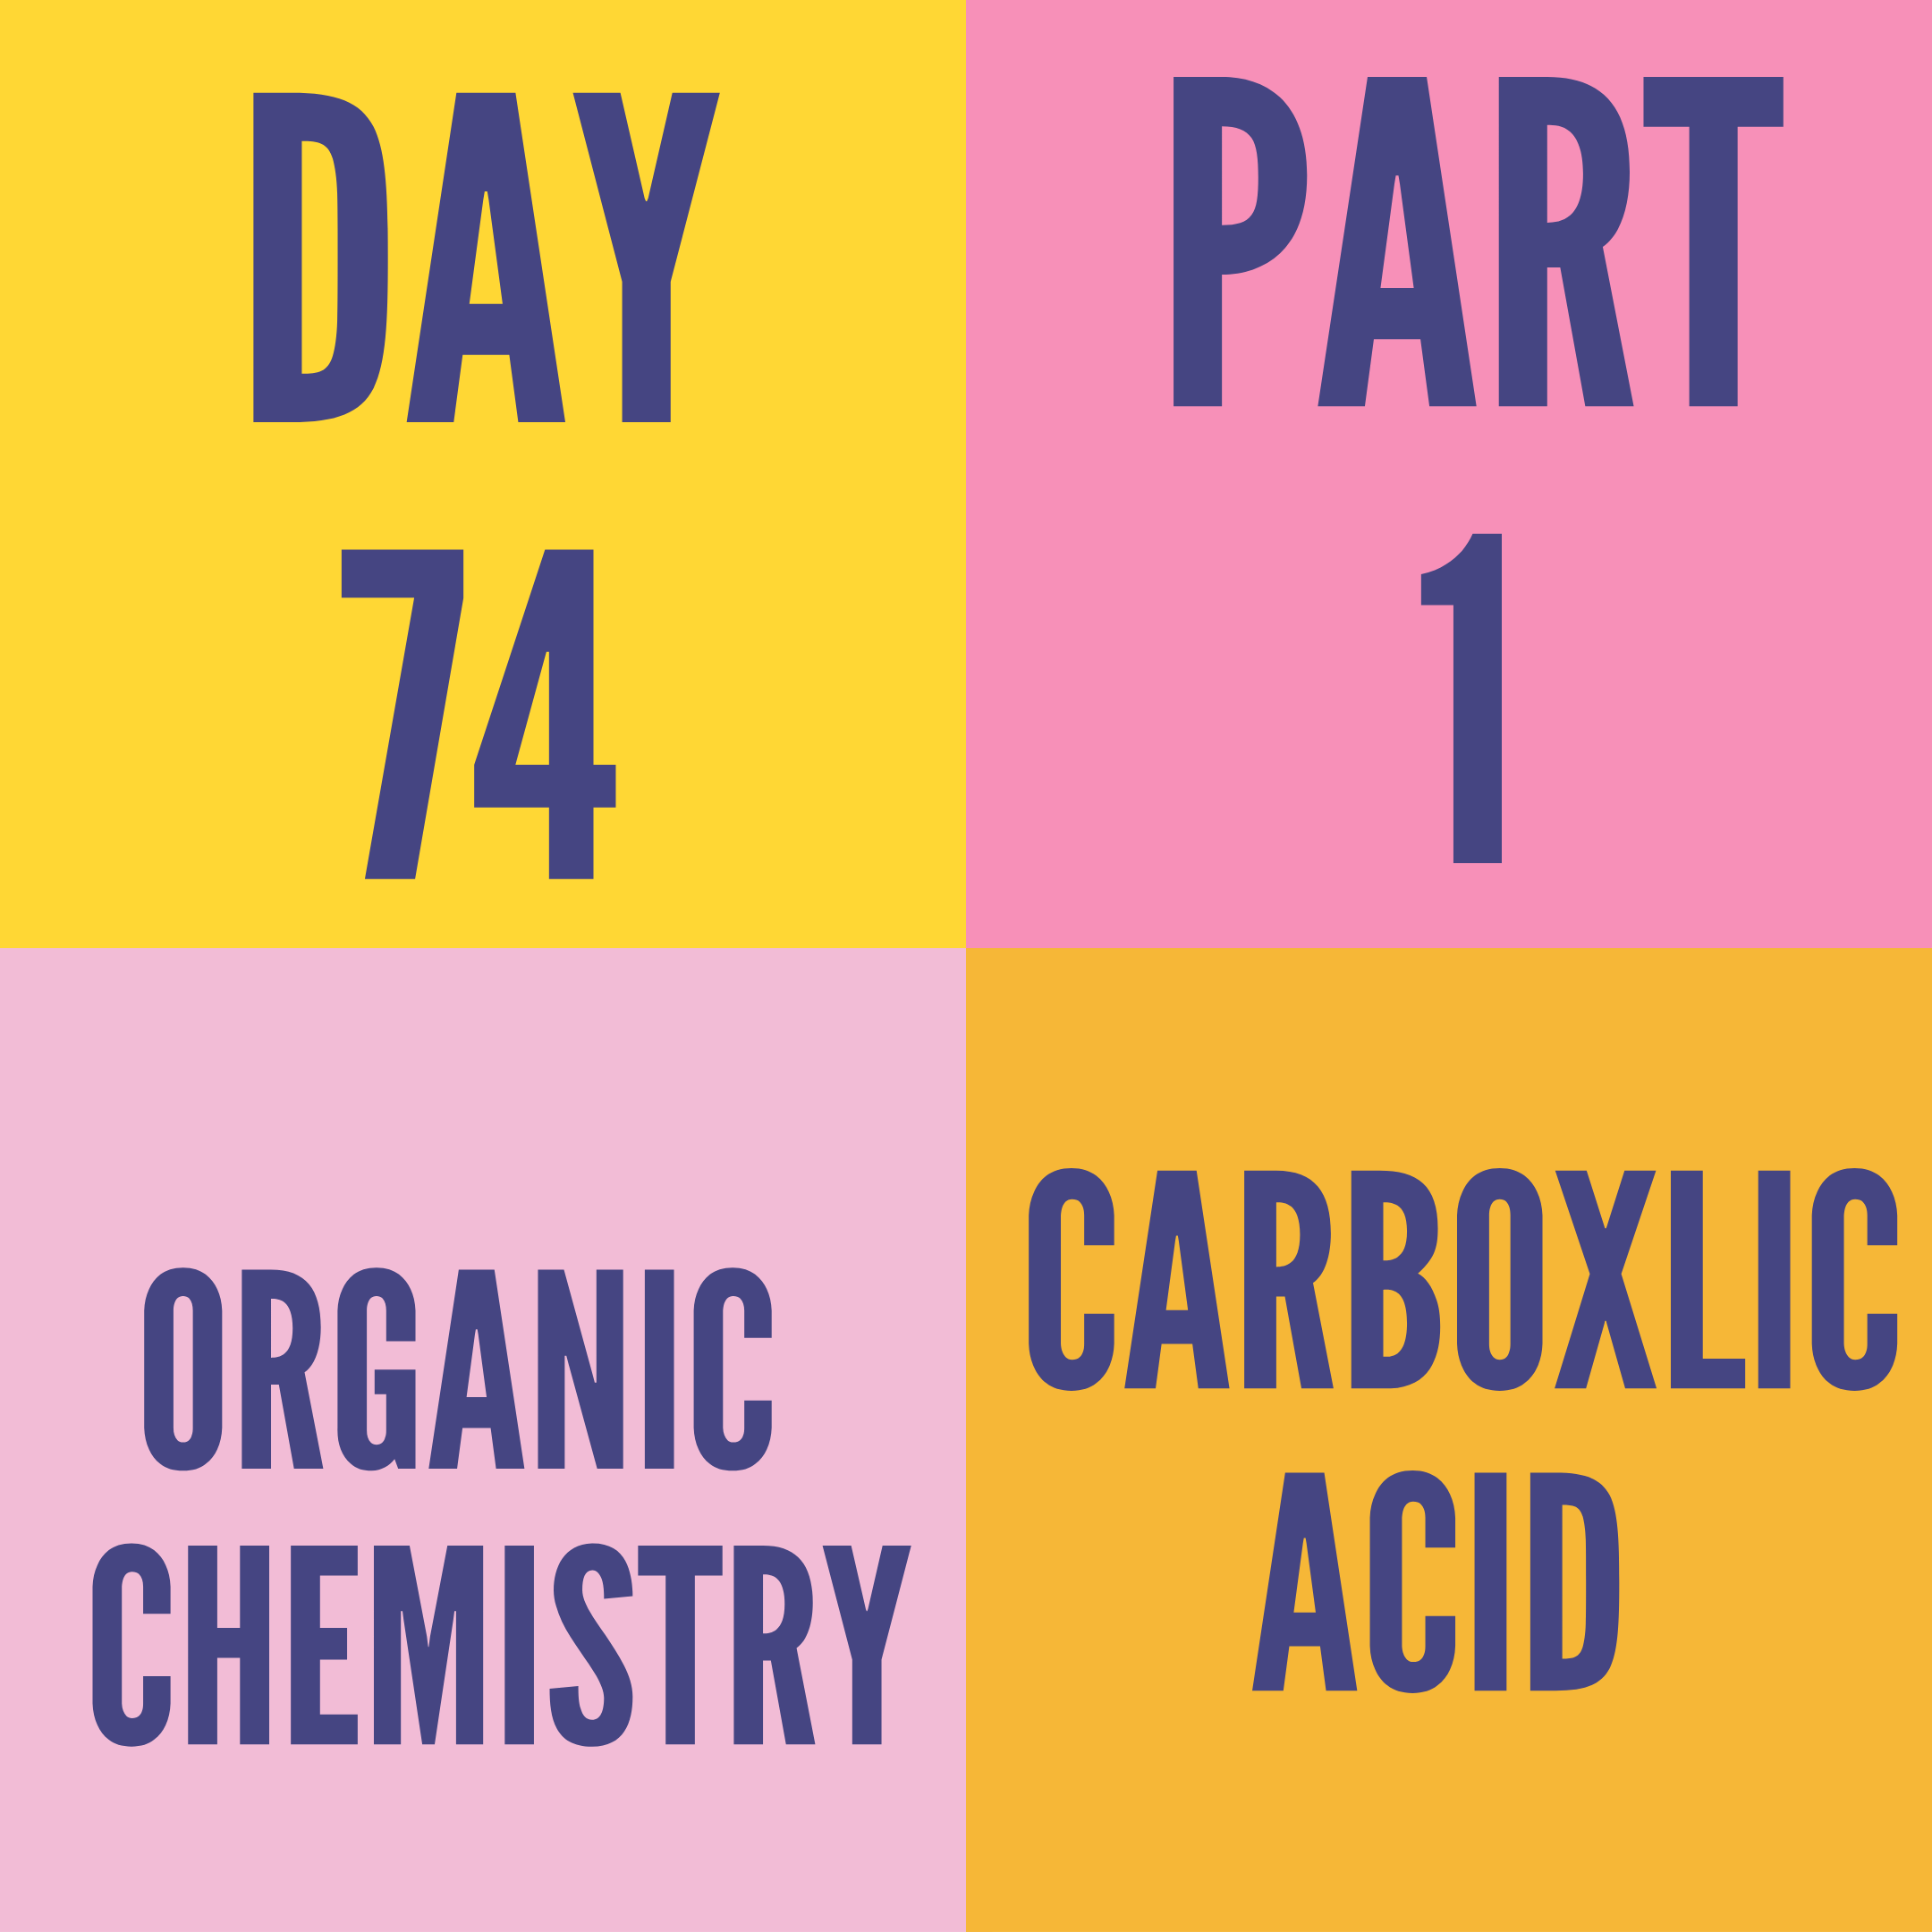 DAY-74 PART-1 CARBOXYLIC ACID